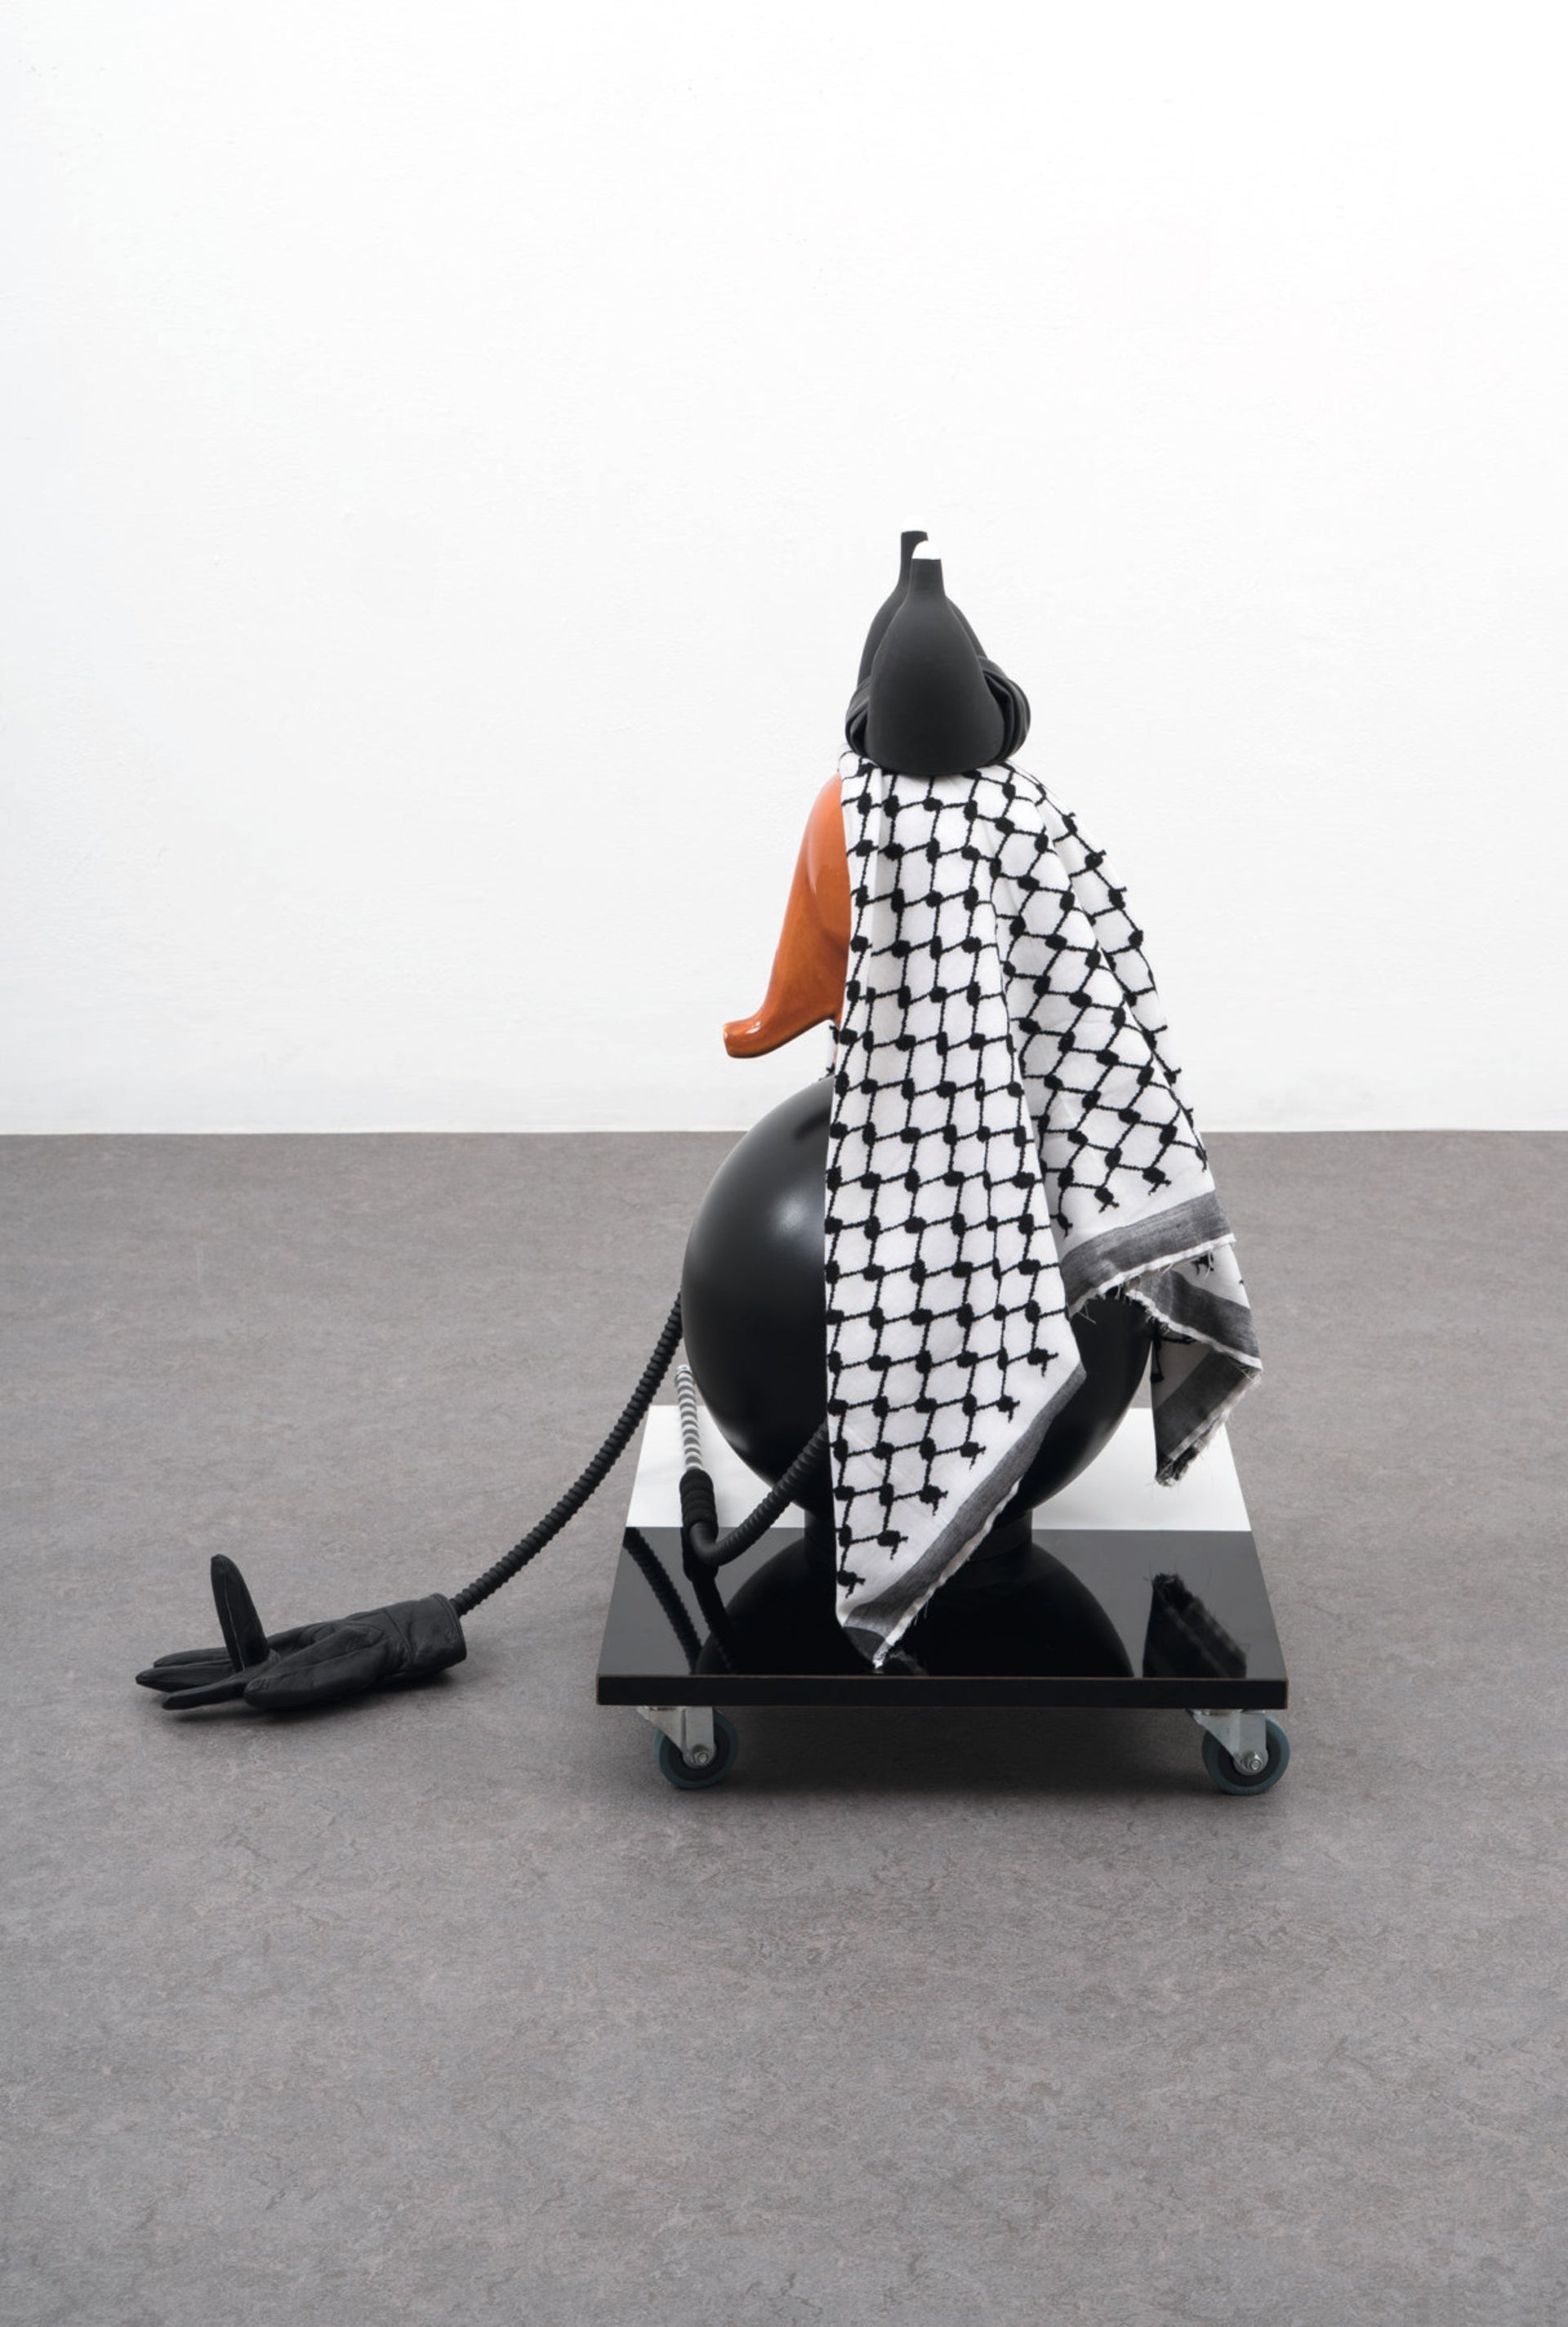 One of the pieces of art by Israeli artist Yael Yudkovik.